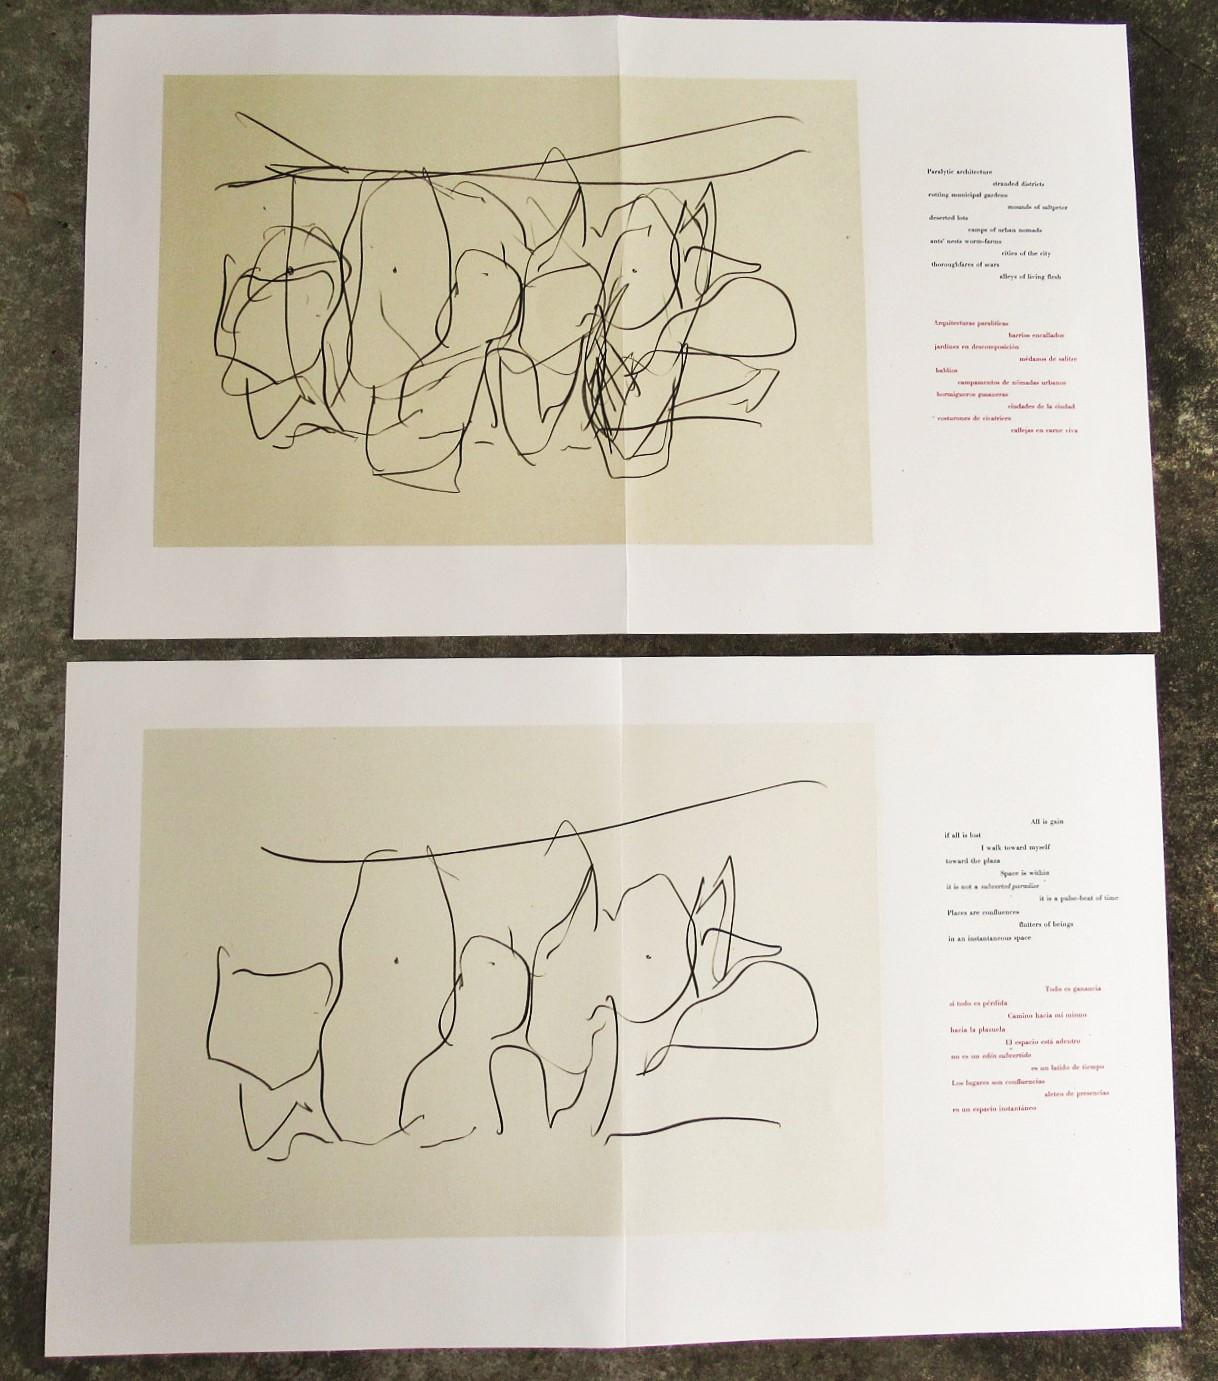 TWO_2_ORIGINAL_LITHOGRAPHS_BY_MOTHERWELL_MOTHERWELL_Near_Fine